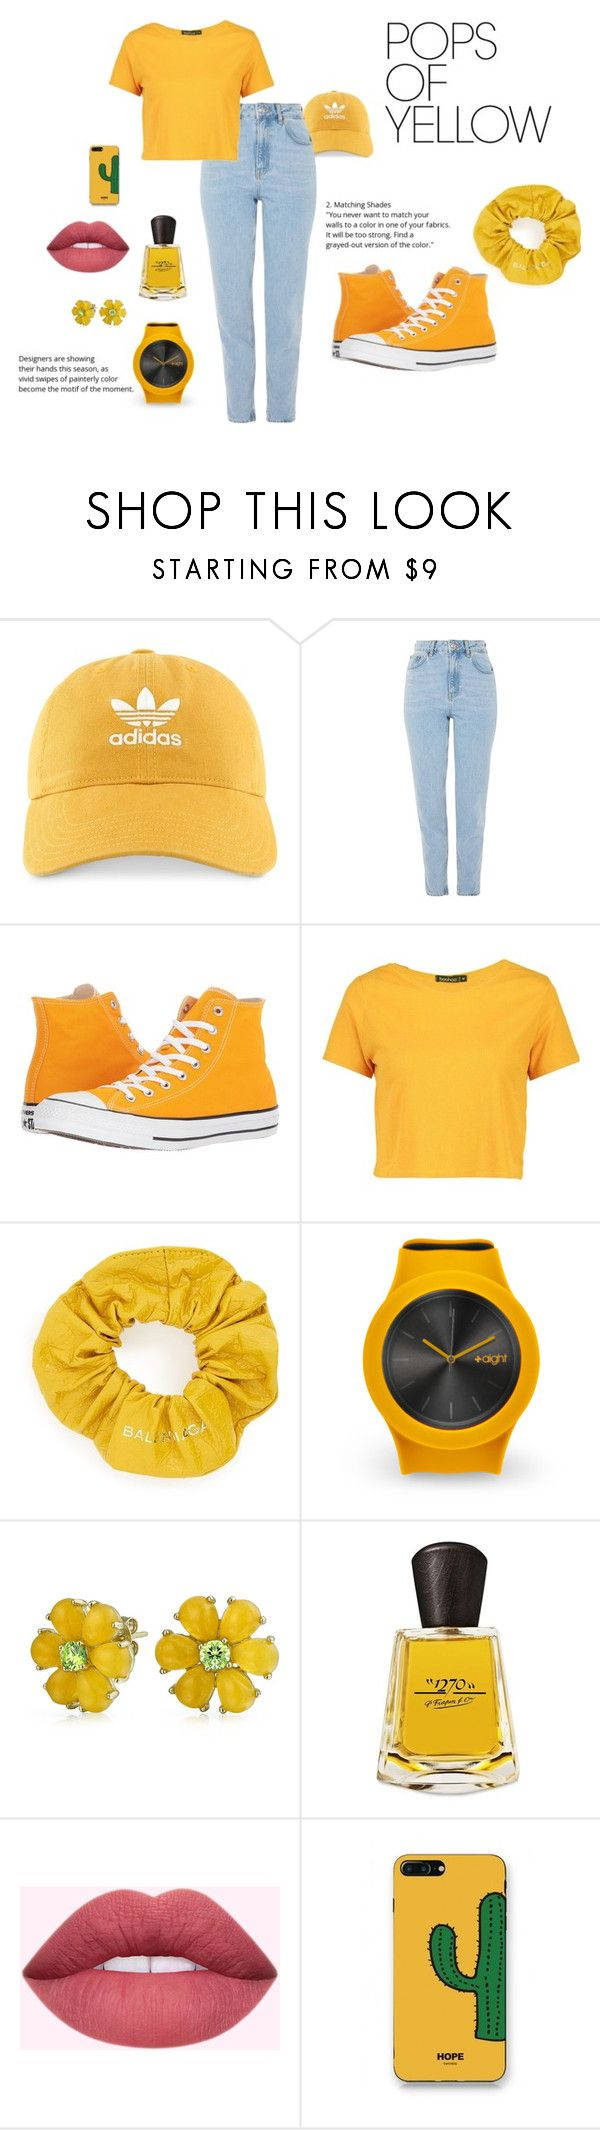 """""""Hello Yellow"""" by freesea ❤ liked on Polyvore featuring adidas, Topshop, Converse, Boohoo, Balenciaga, Bling Jewelry, Frapin, WithChic, PopsOfYellow and NYFWYellow"""